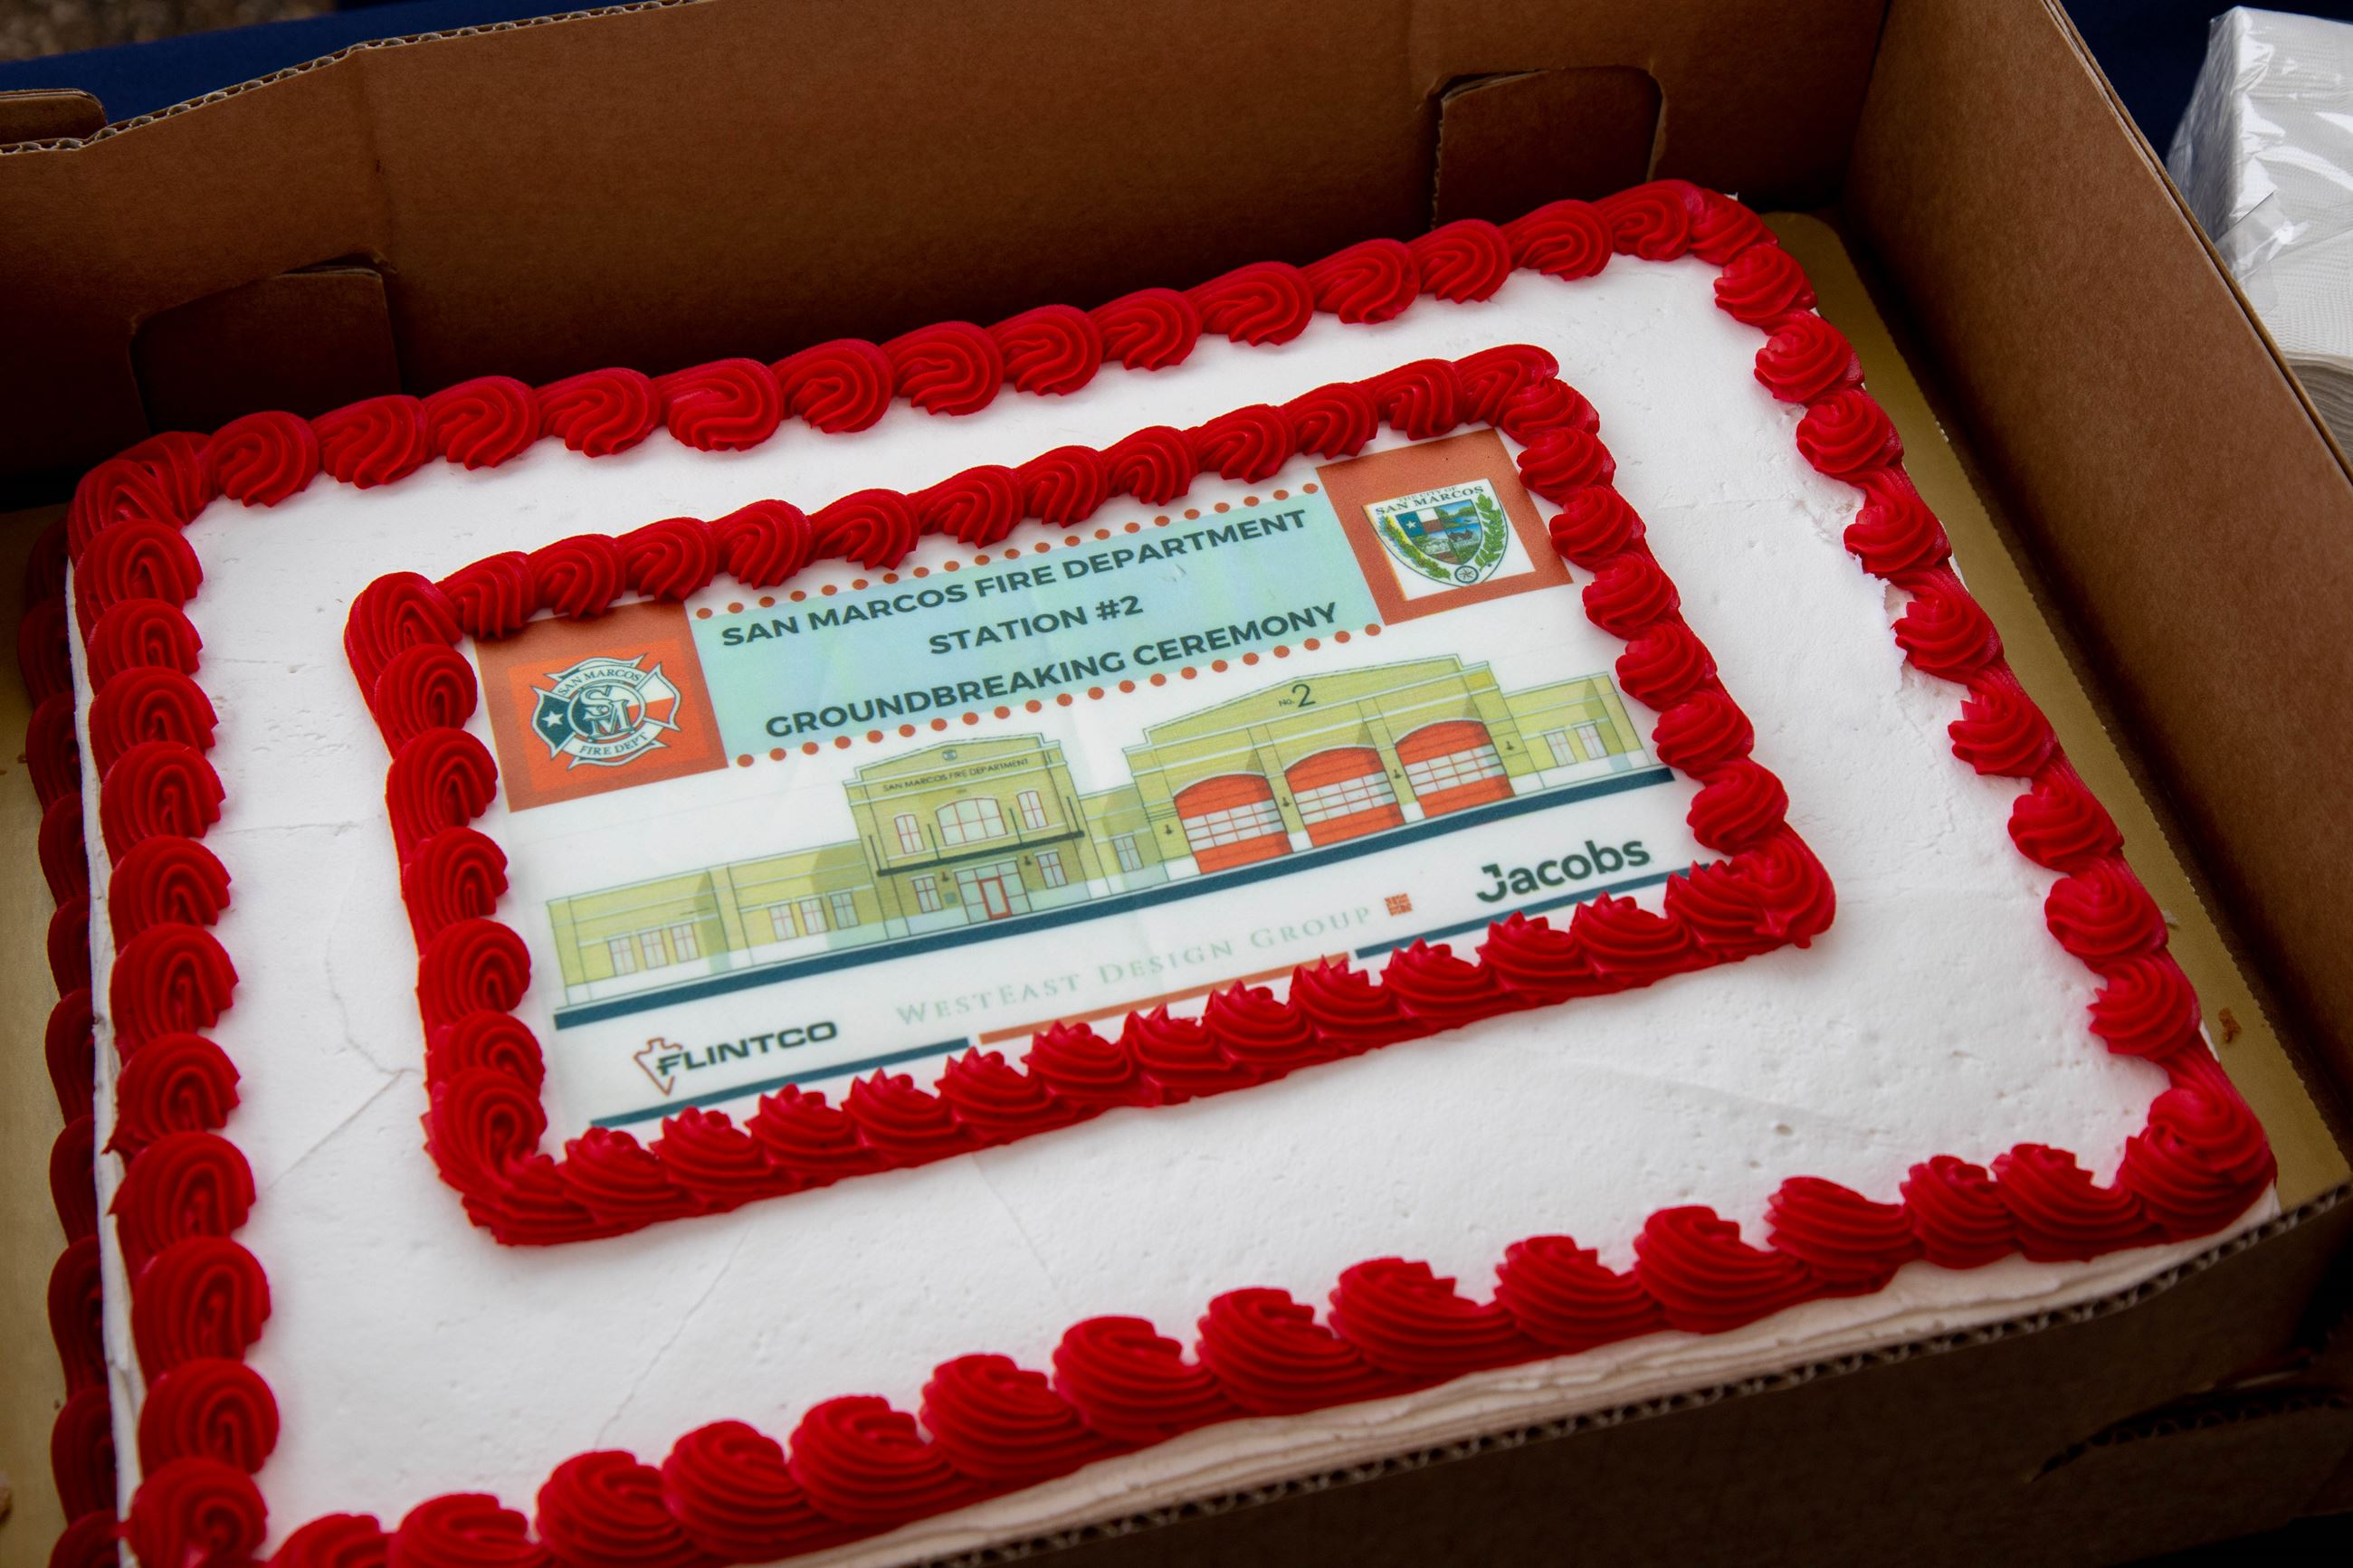 Fire House Groundbreaking-Cake